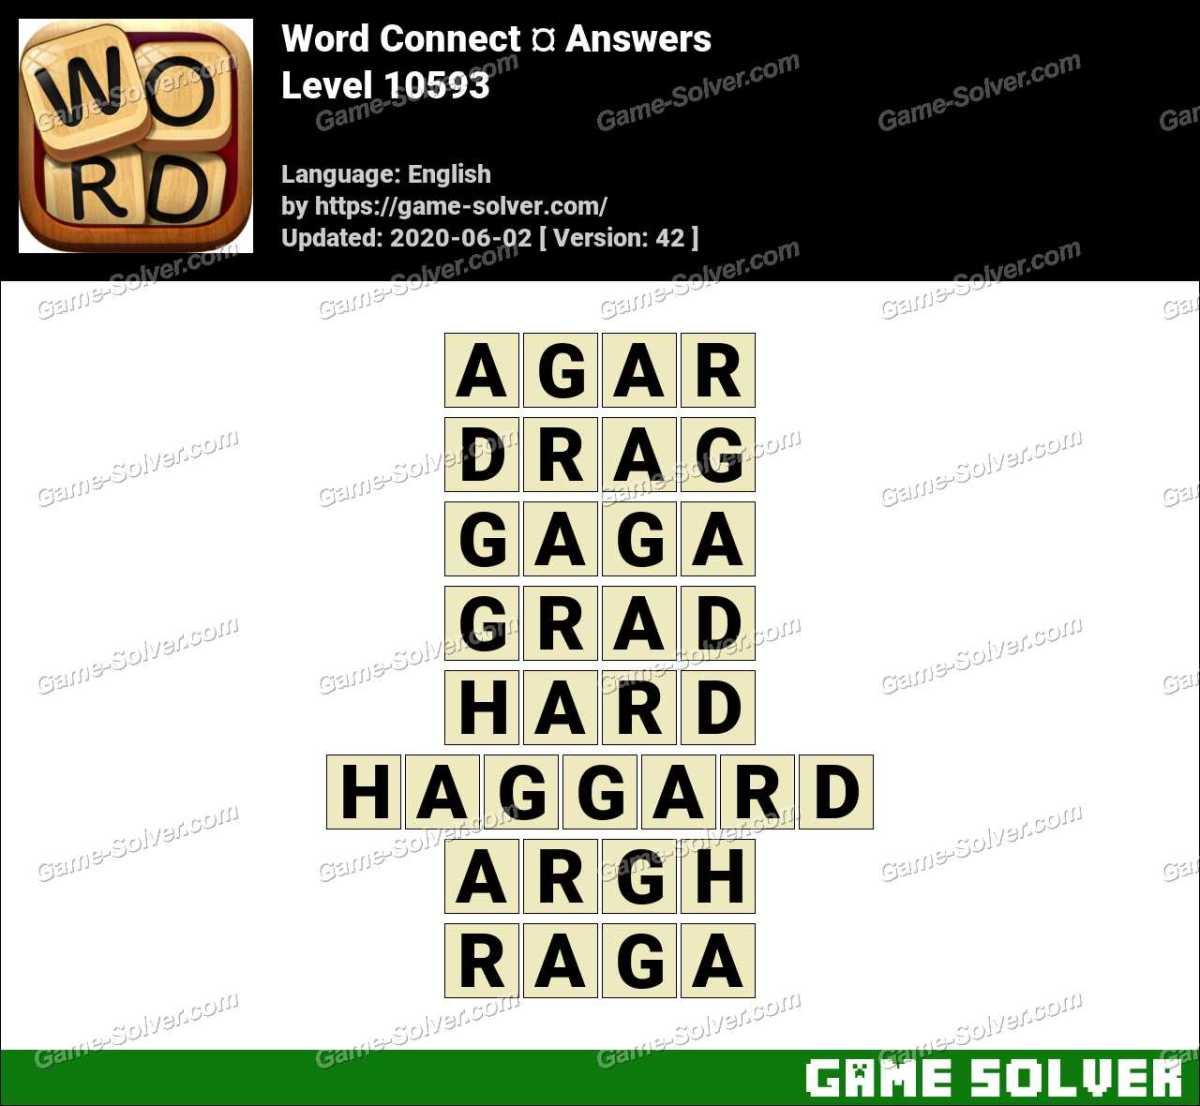 Word Connect Level 10593 Answers